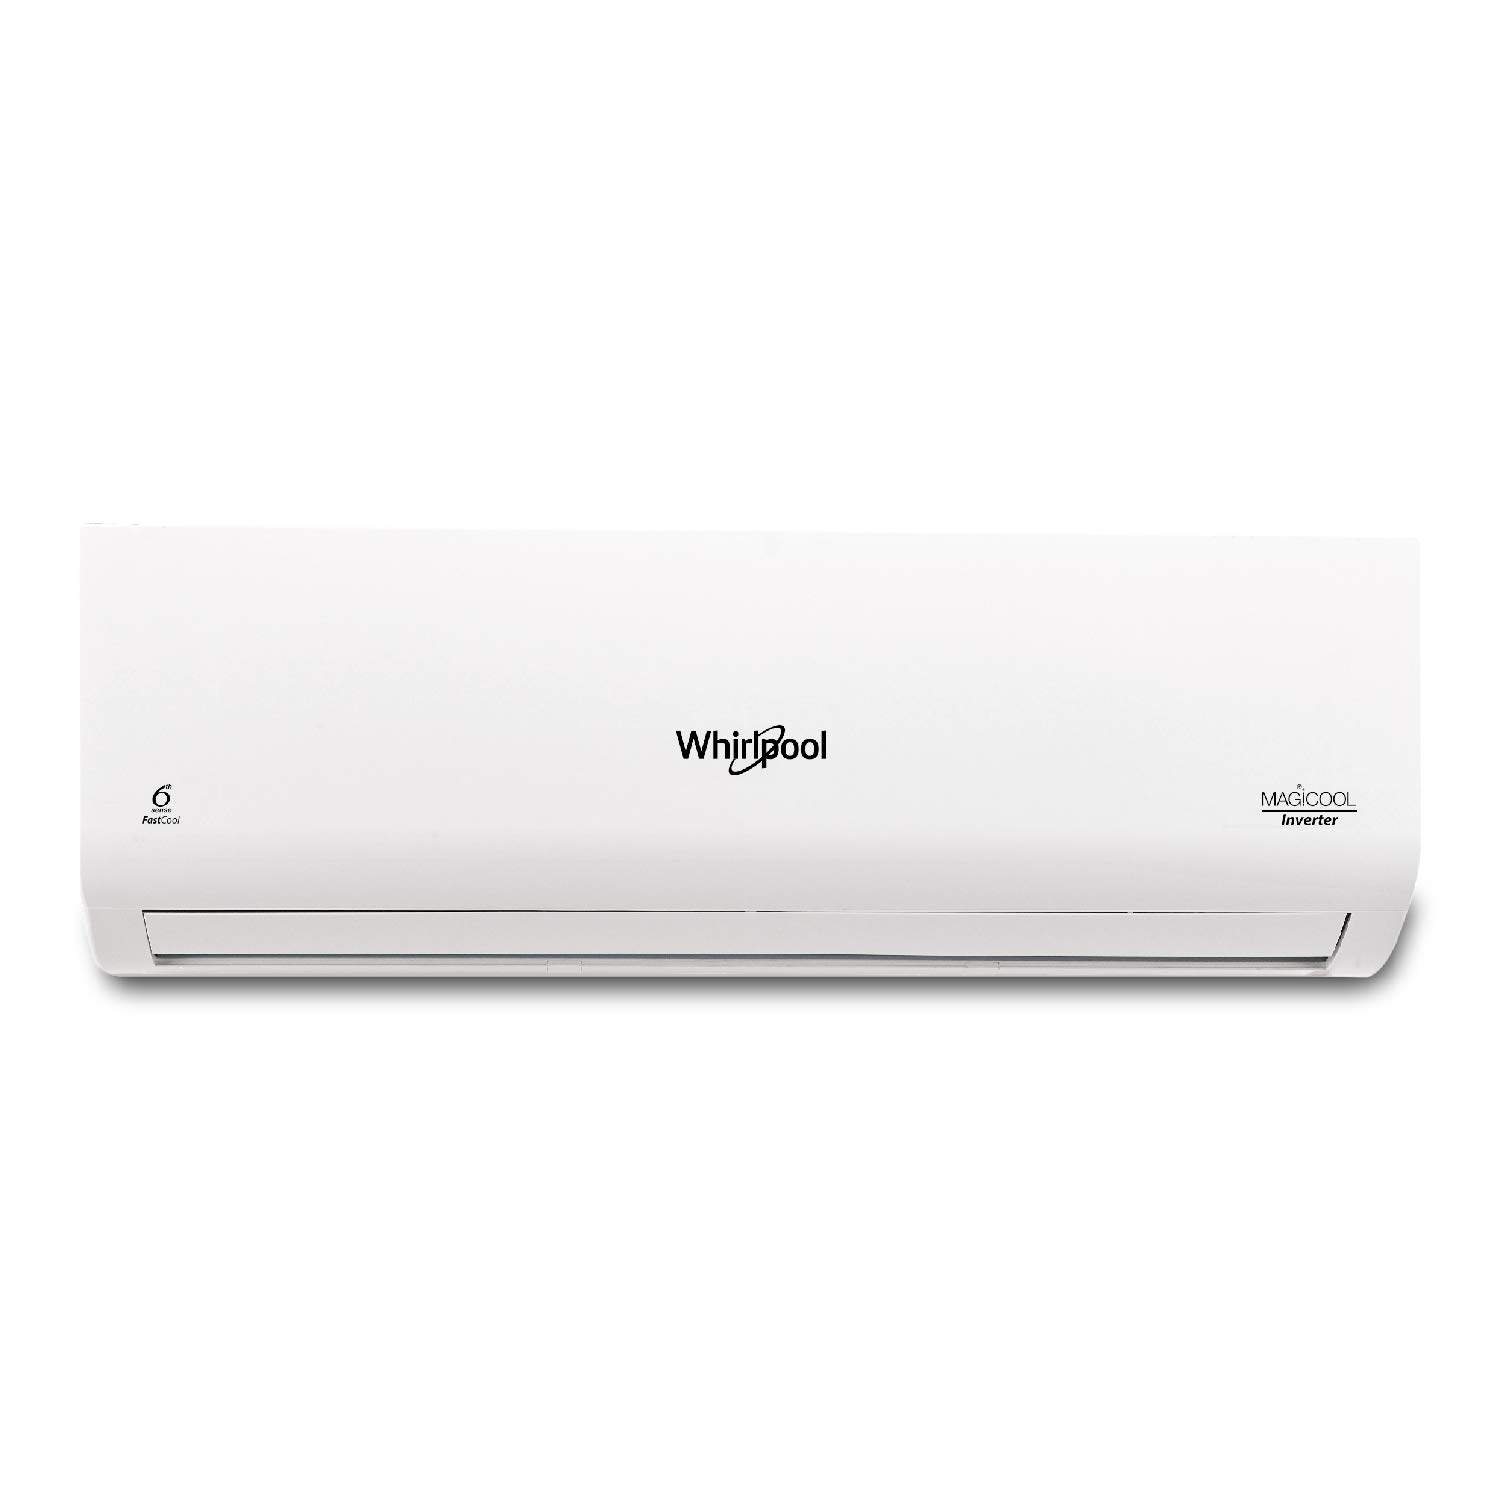 Whirlpool 0.8 Ton 3 Star Inverter Split AC (Copper, 0.8T Magicool 3S COPR Inverter, White)